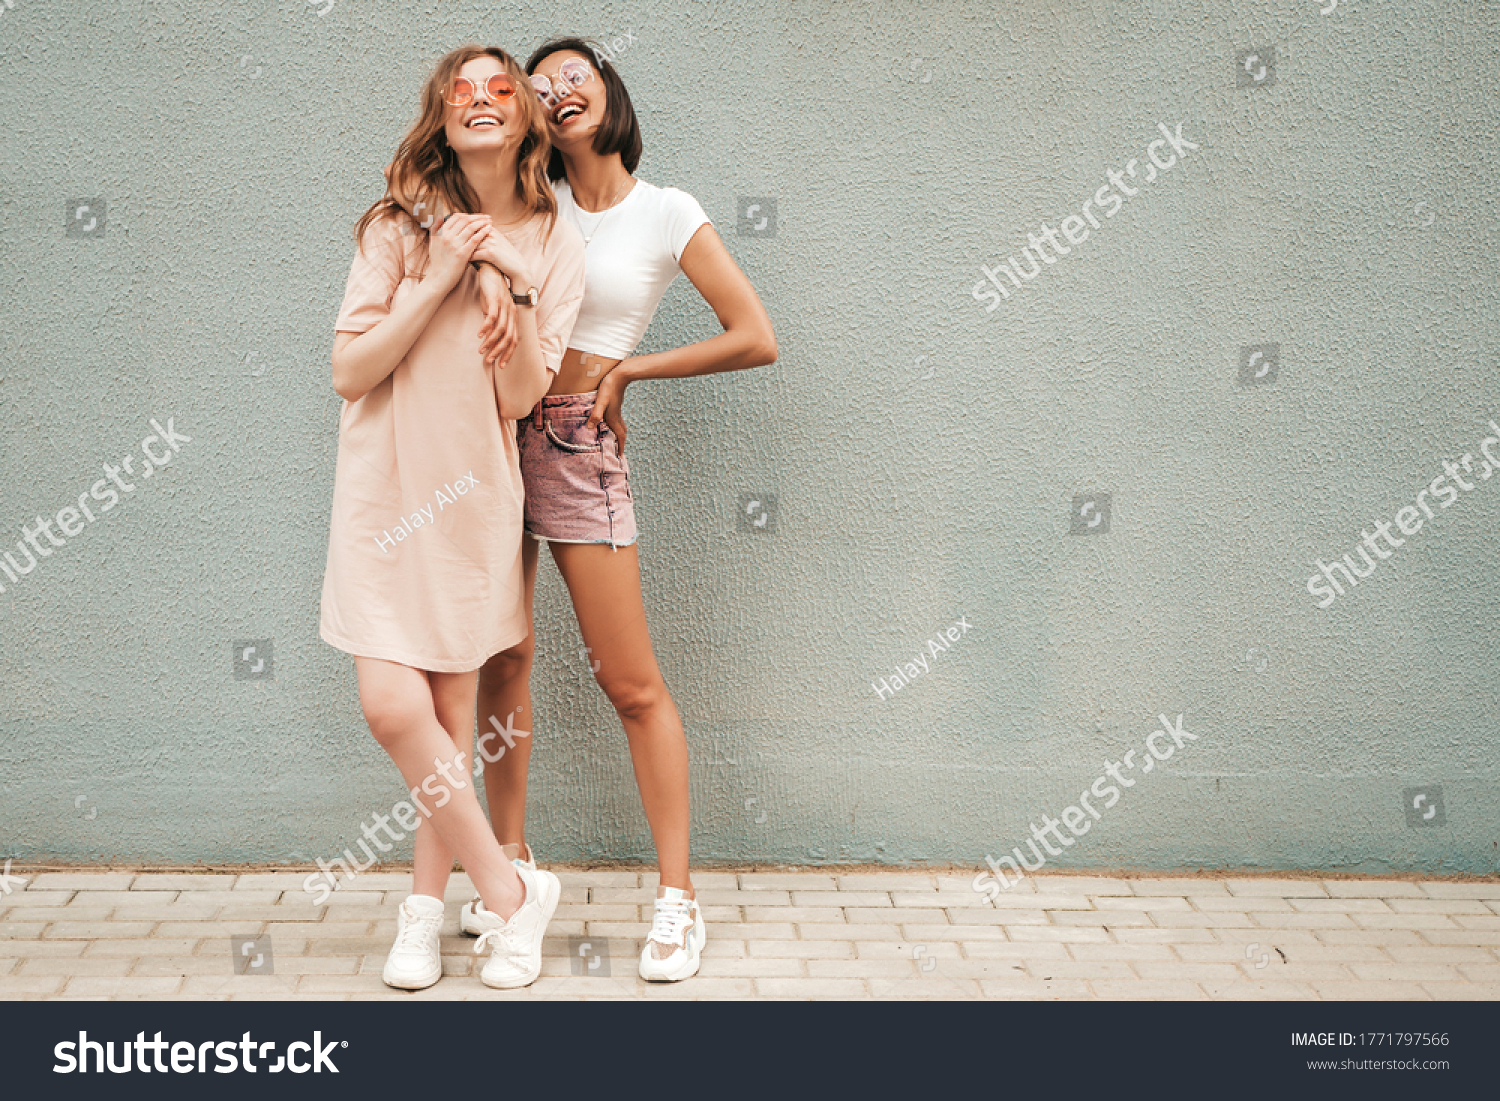 Two young beautiful smiling hipster girls in trendy summer clothes.Sexy carefree women posing on street background in sunglasses. Positive models having fun and hugging #1771797566